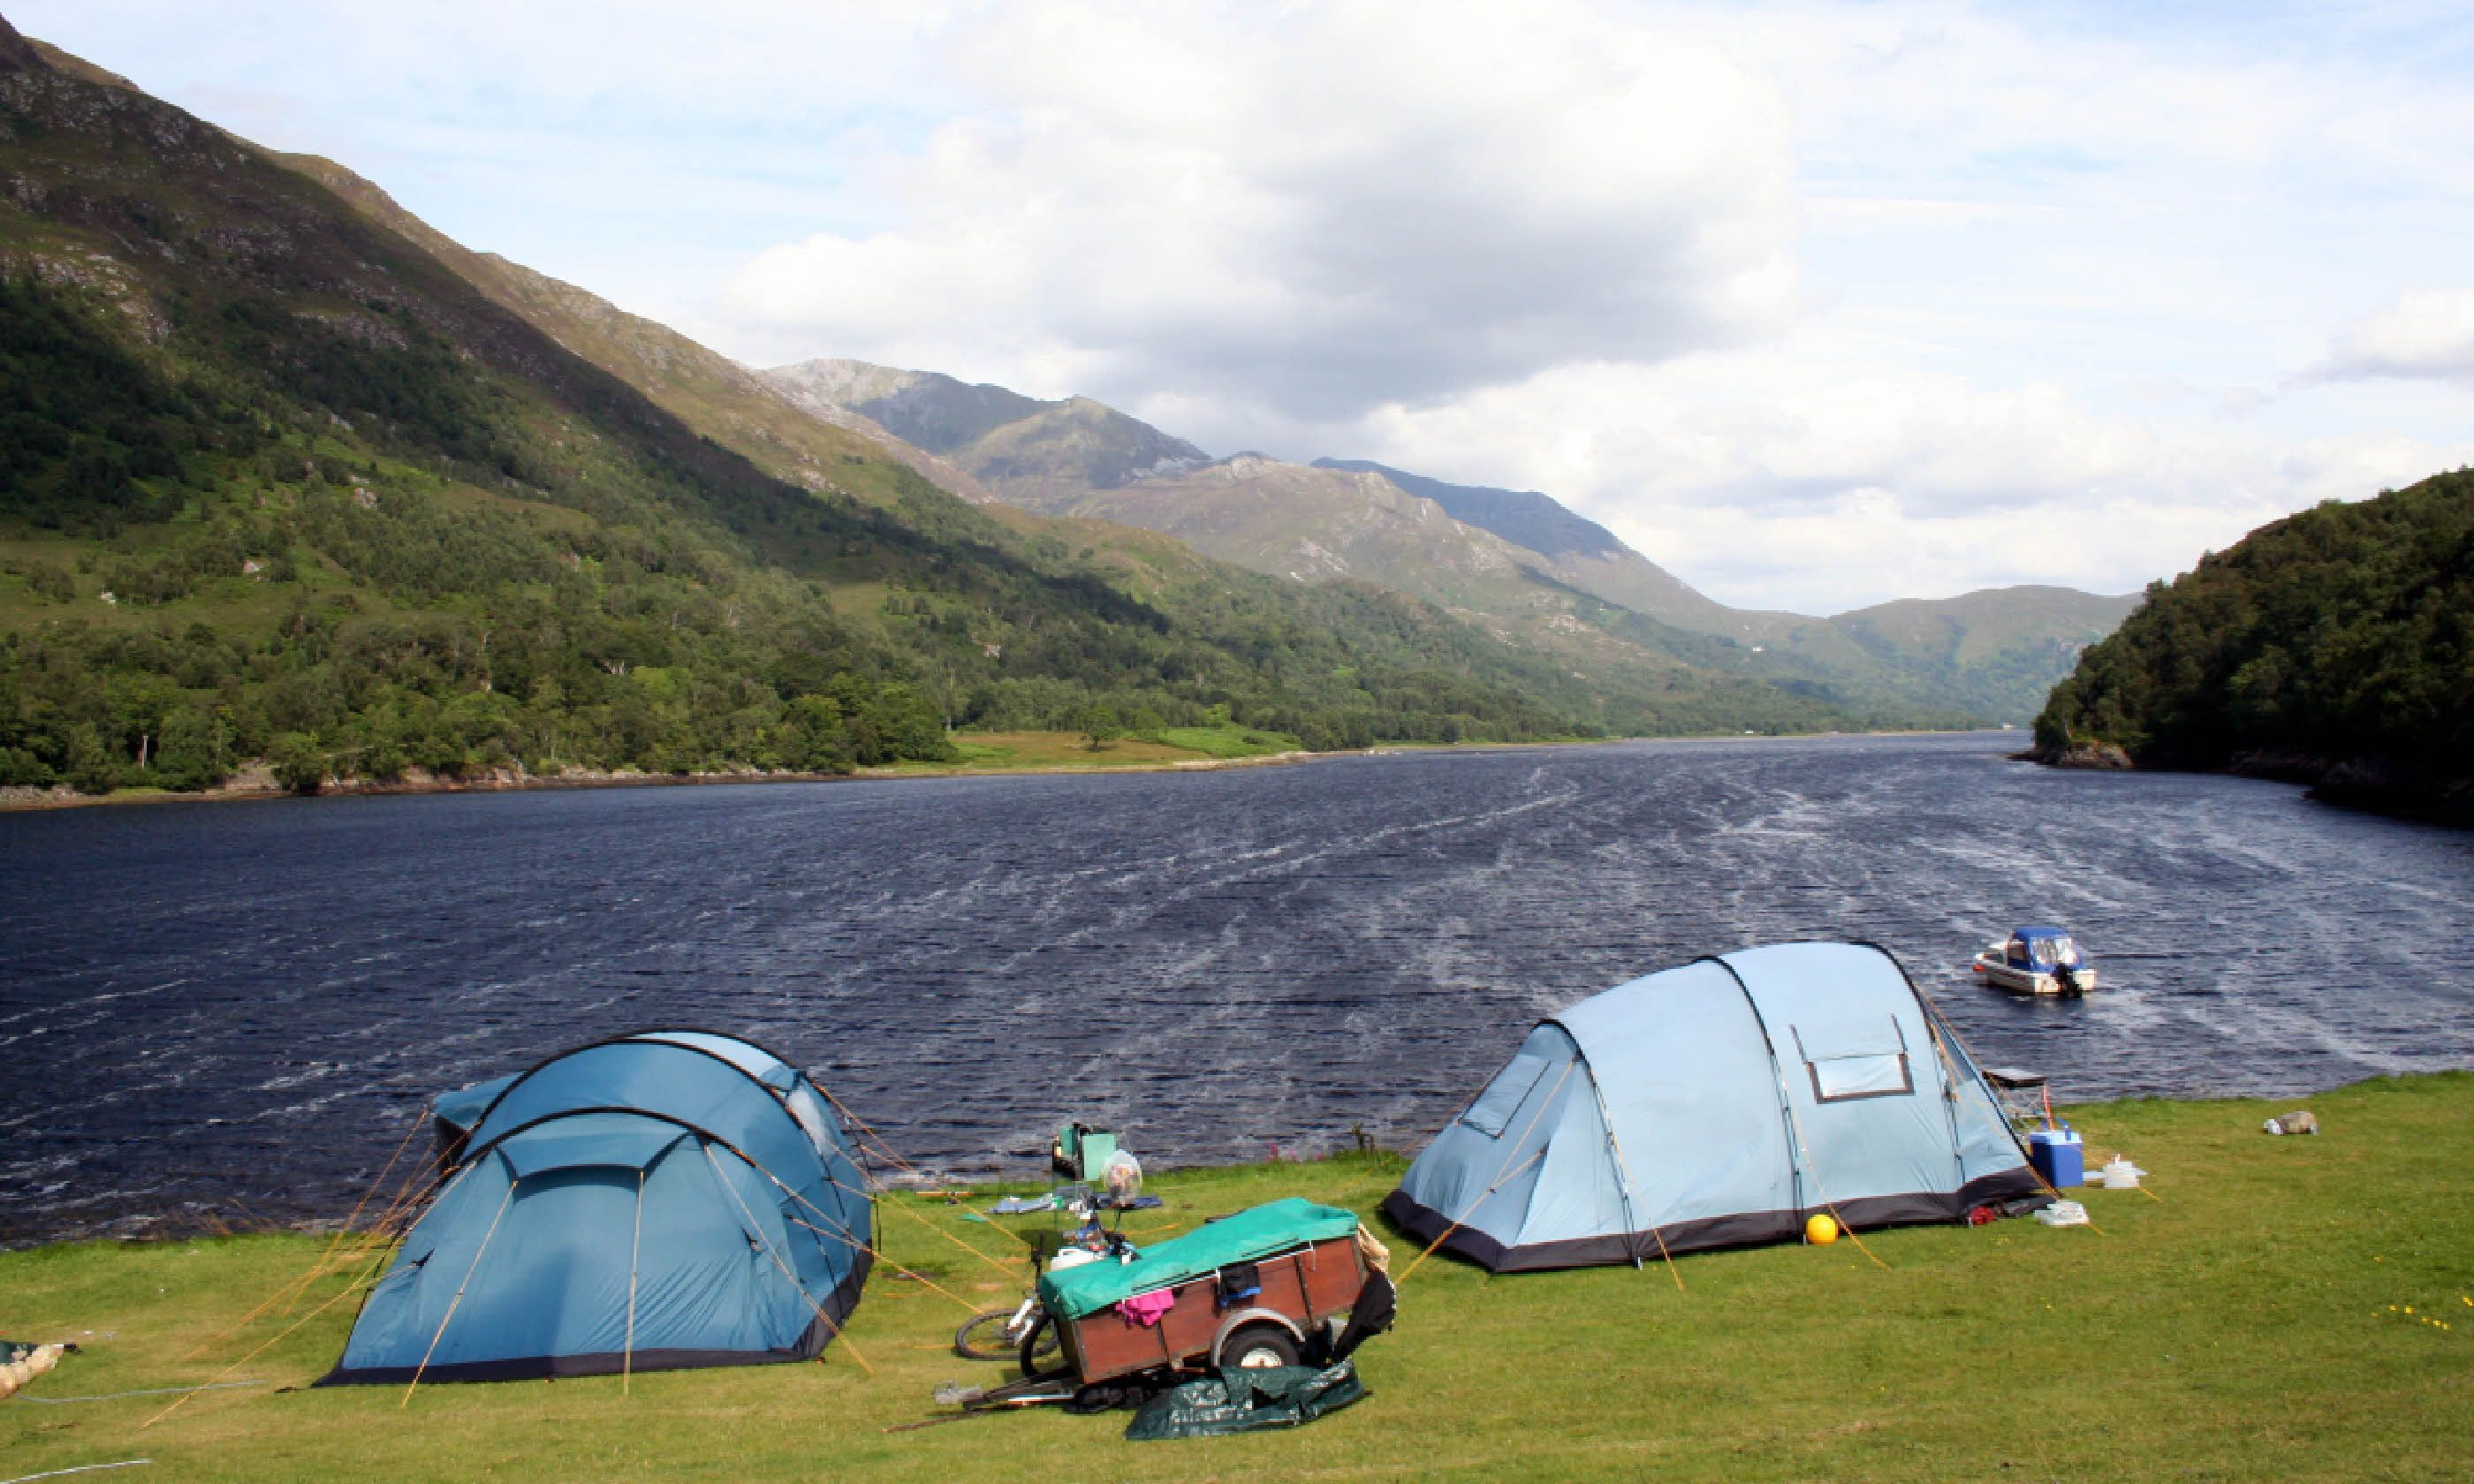 Whatu0027s allowed Tents c&ervans dogs caravans big groups young groups u2013 yes. Amenities 50 pitches. Those near the loch can be windy but it does give ... & Scotlandu0027s 7 best campsites | Wanderlust